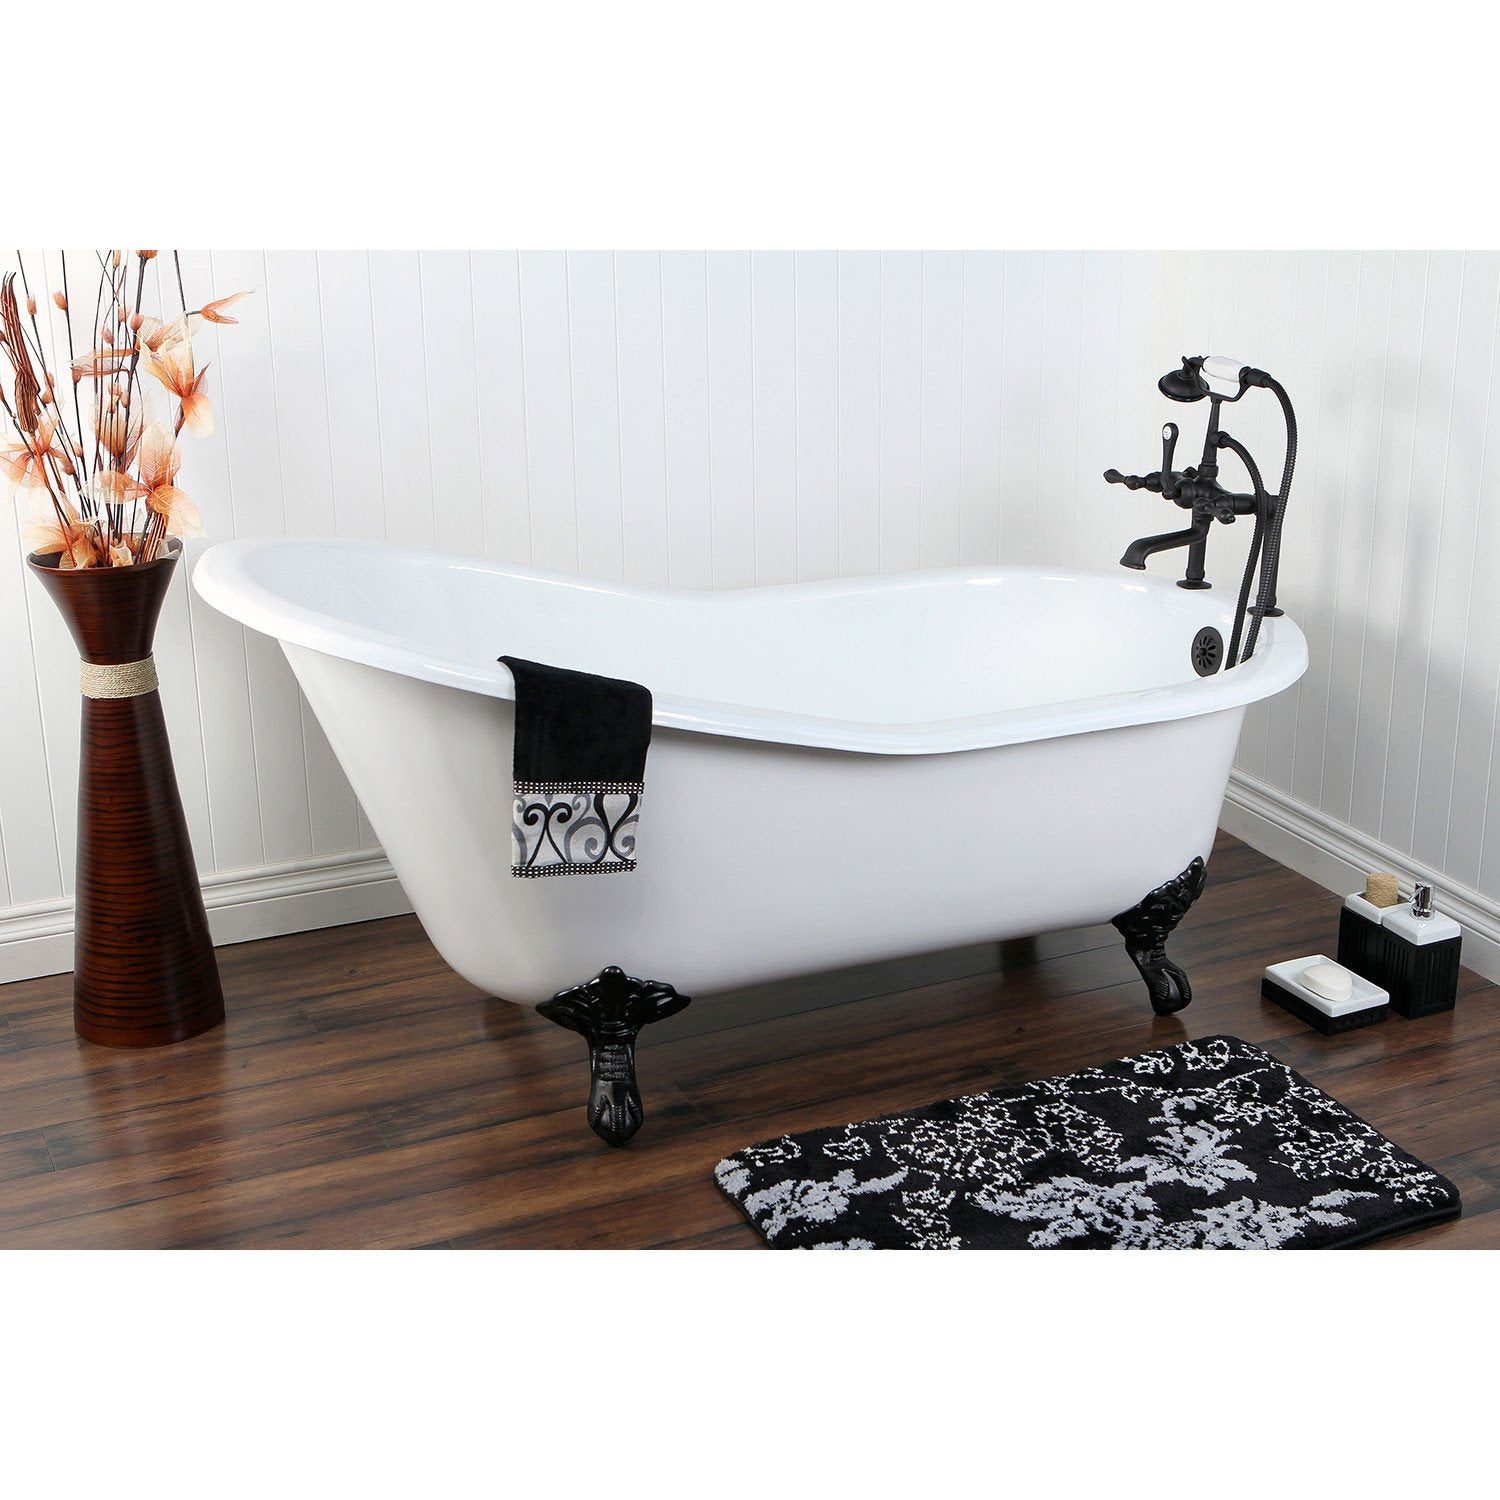 61 Clawfoot Tub With Oil Rubbed Bronze Tub Faucet And Hardware Package Ctp11